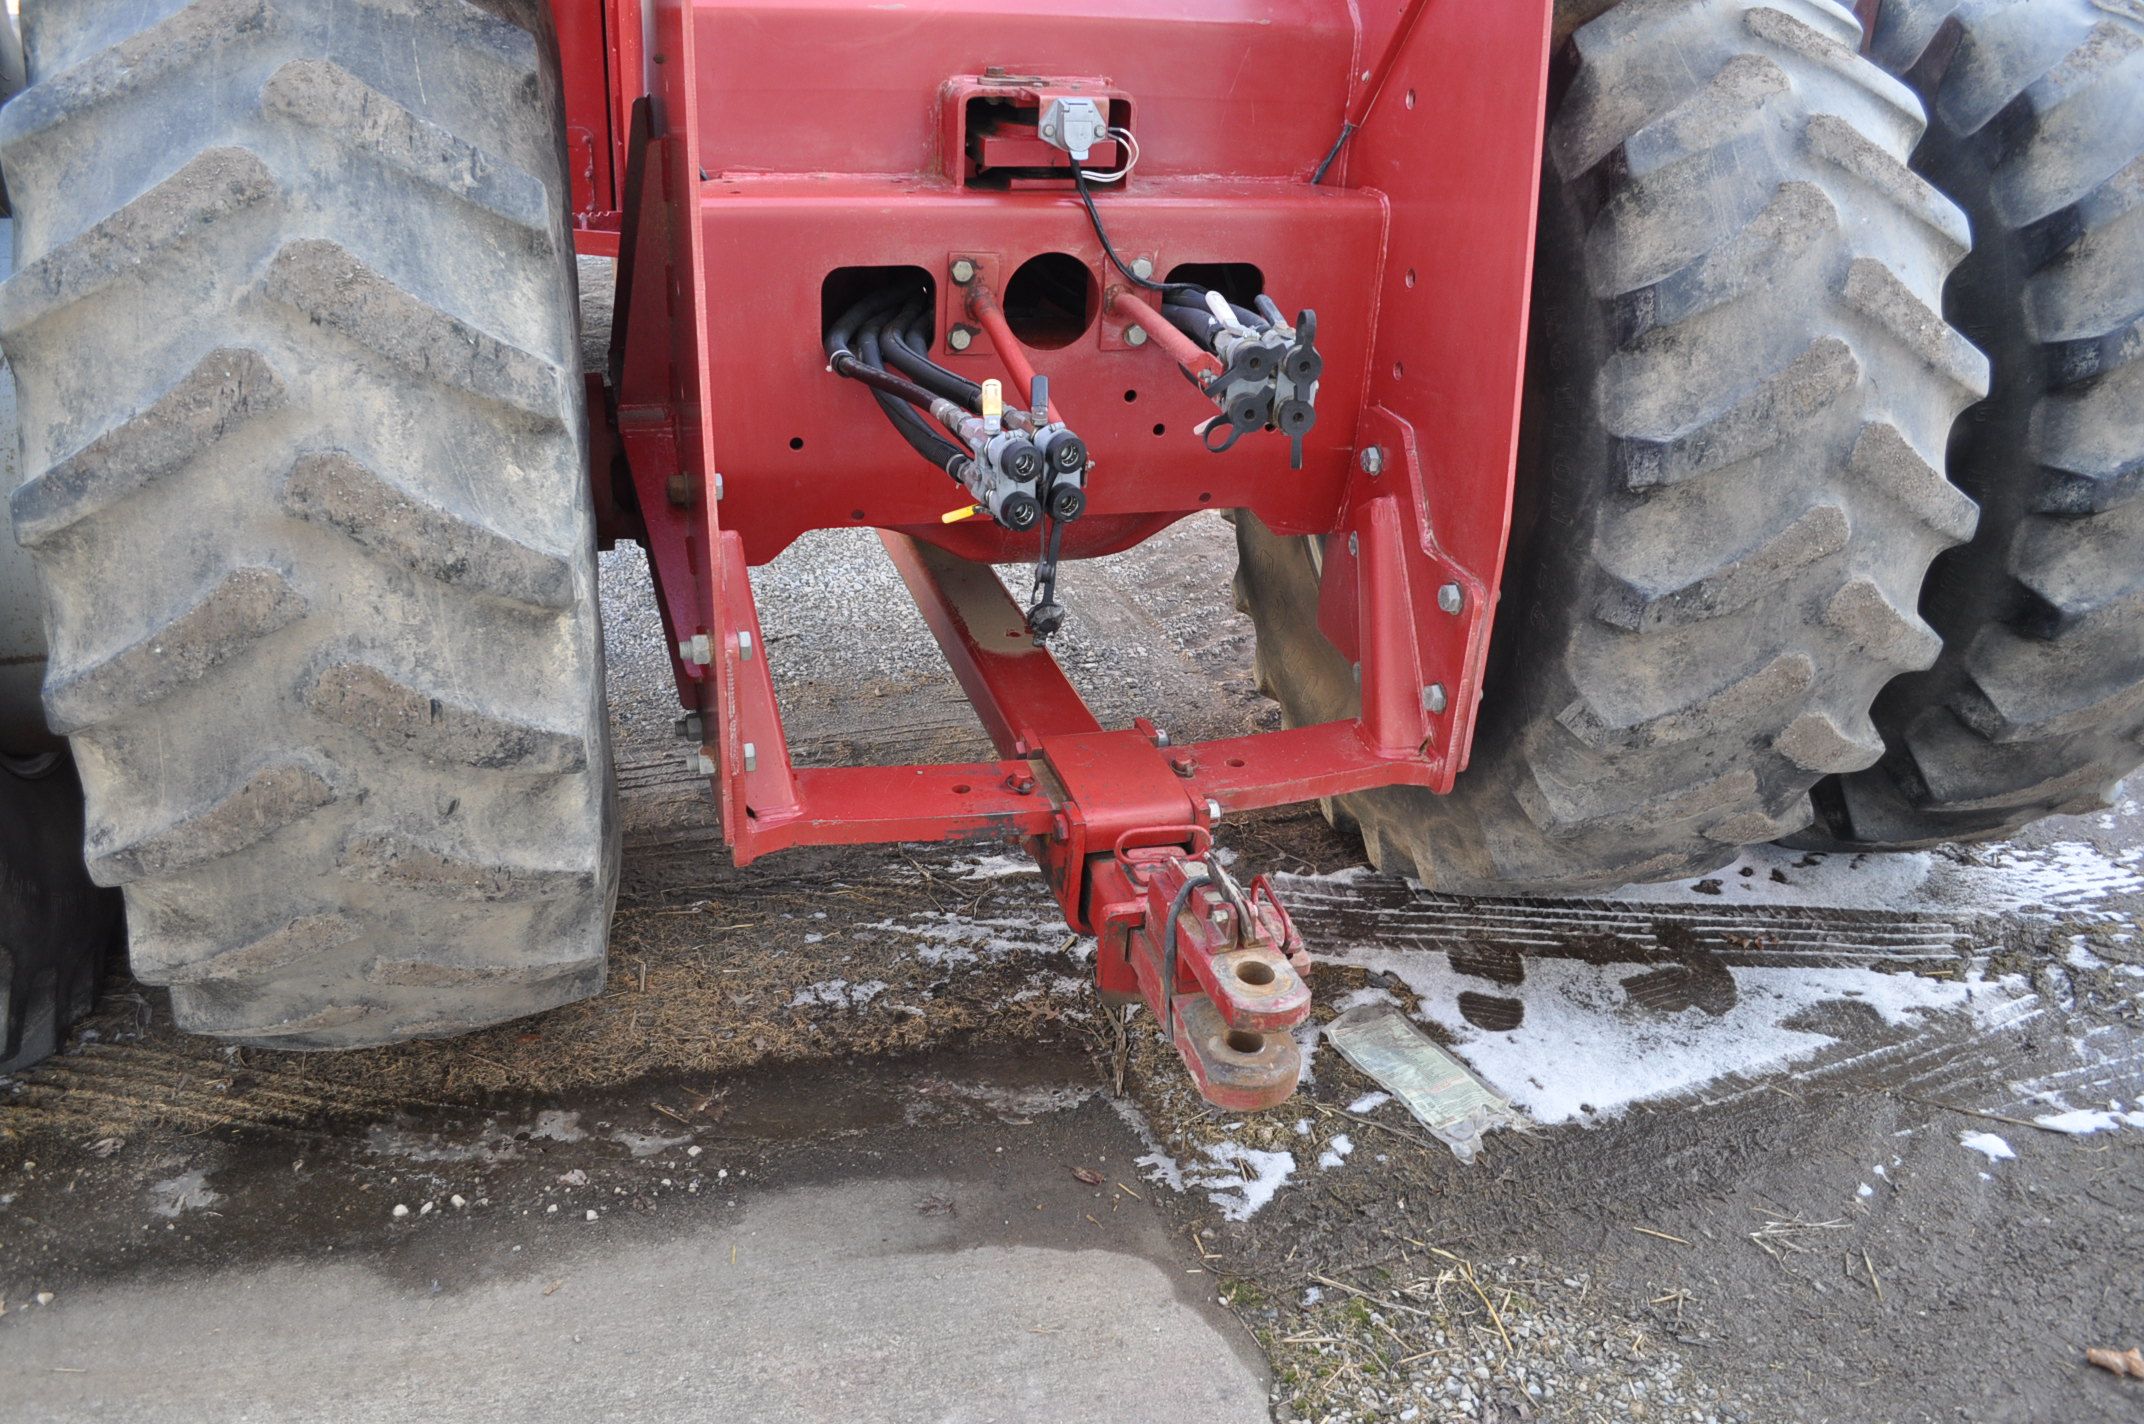 Case IH 9370 4WD tractor, 24.5R32 duals, power shift, skip shift, 4 hyd remotes, 4622 hrs, front - Image 16 of 23